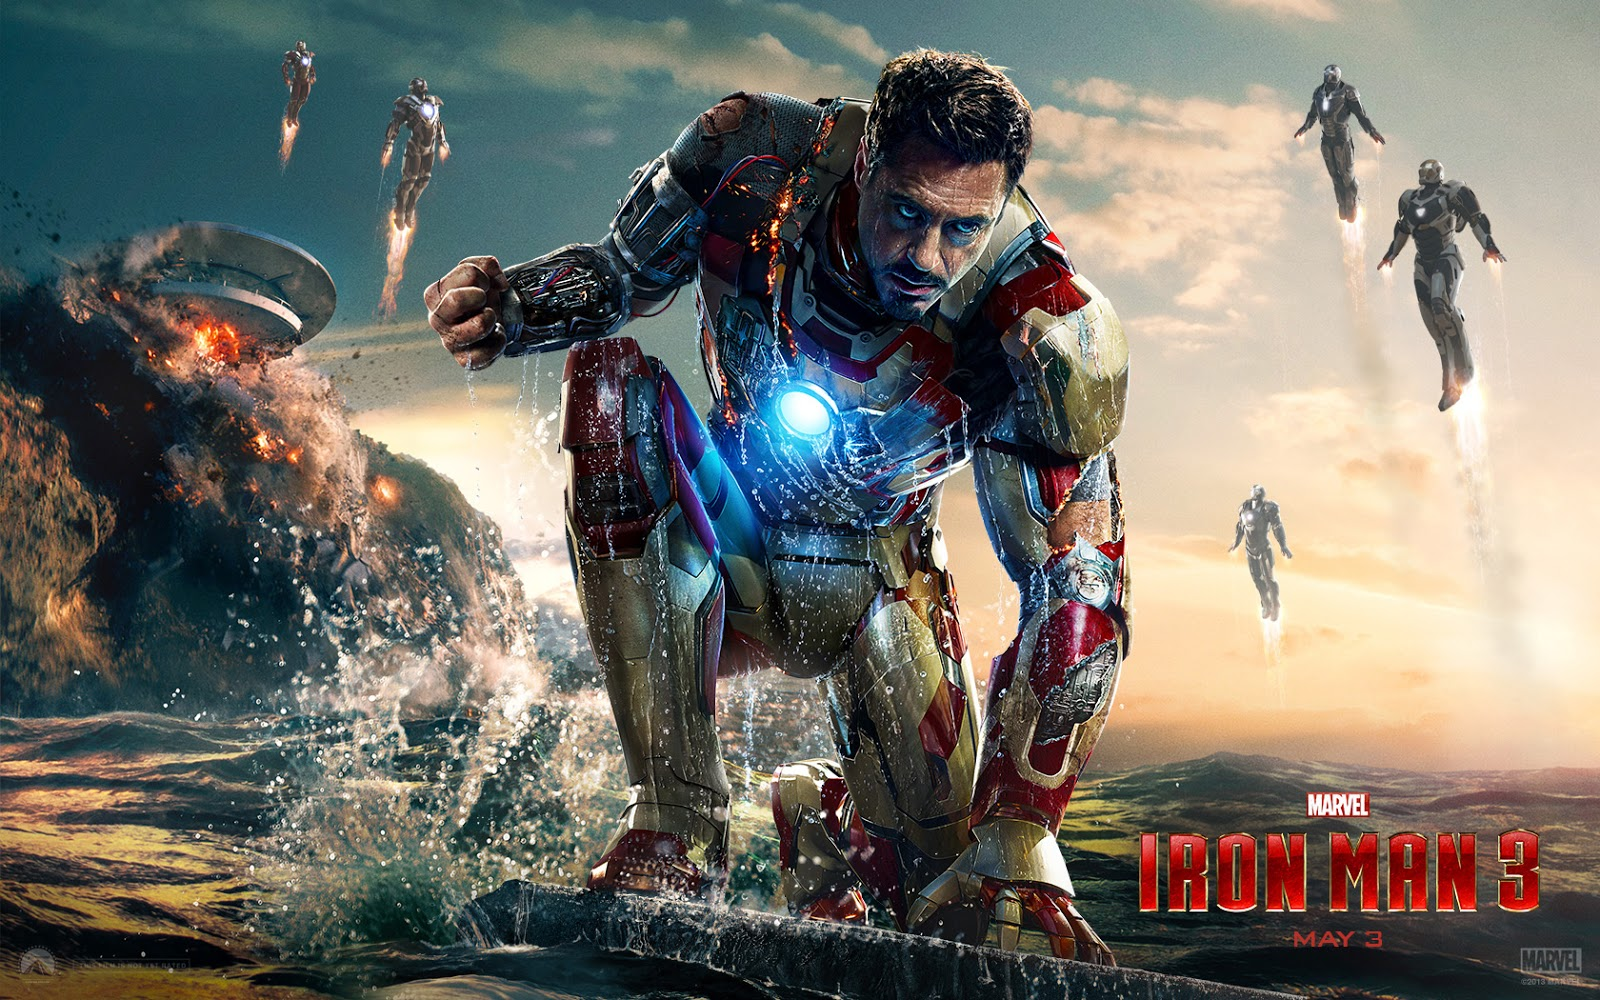 New HD Wallpapers 2013 Most Recent Launched Hollywood Movies 2013 HD 1600x1000